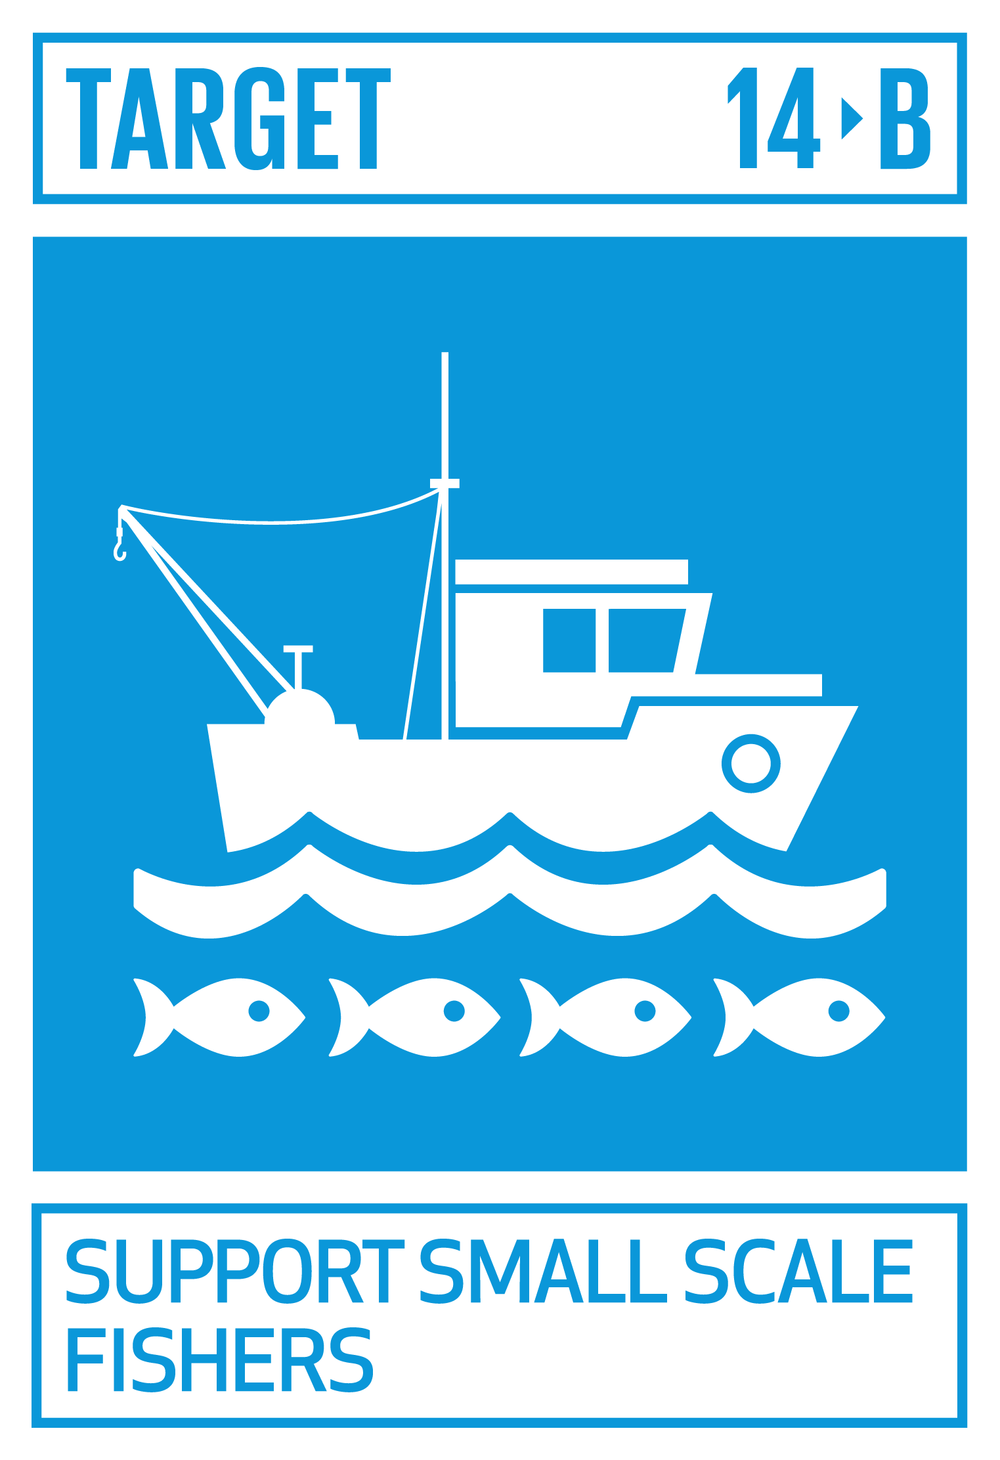 Provide access for small-scale artisanal fishers to marine resources and markets.   INDICATOR    14.b.1  Progress by countries in the degree of application of a legal/regulatory/policy/institutional framework which recognizes and protects access rights for small-scale fisheries